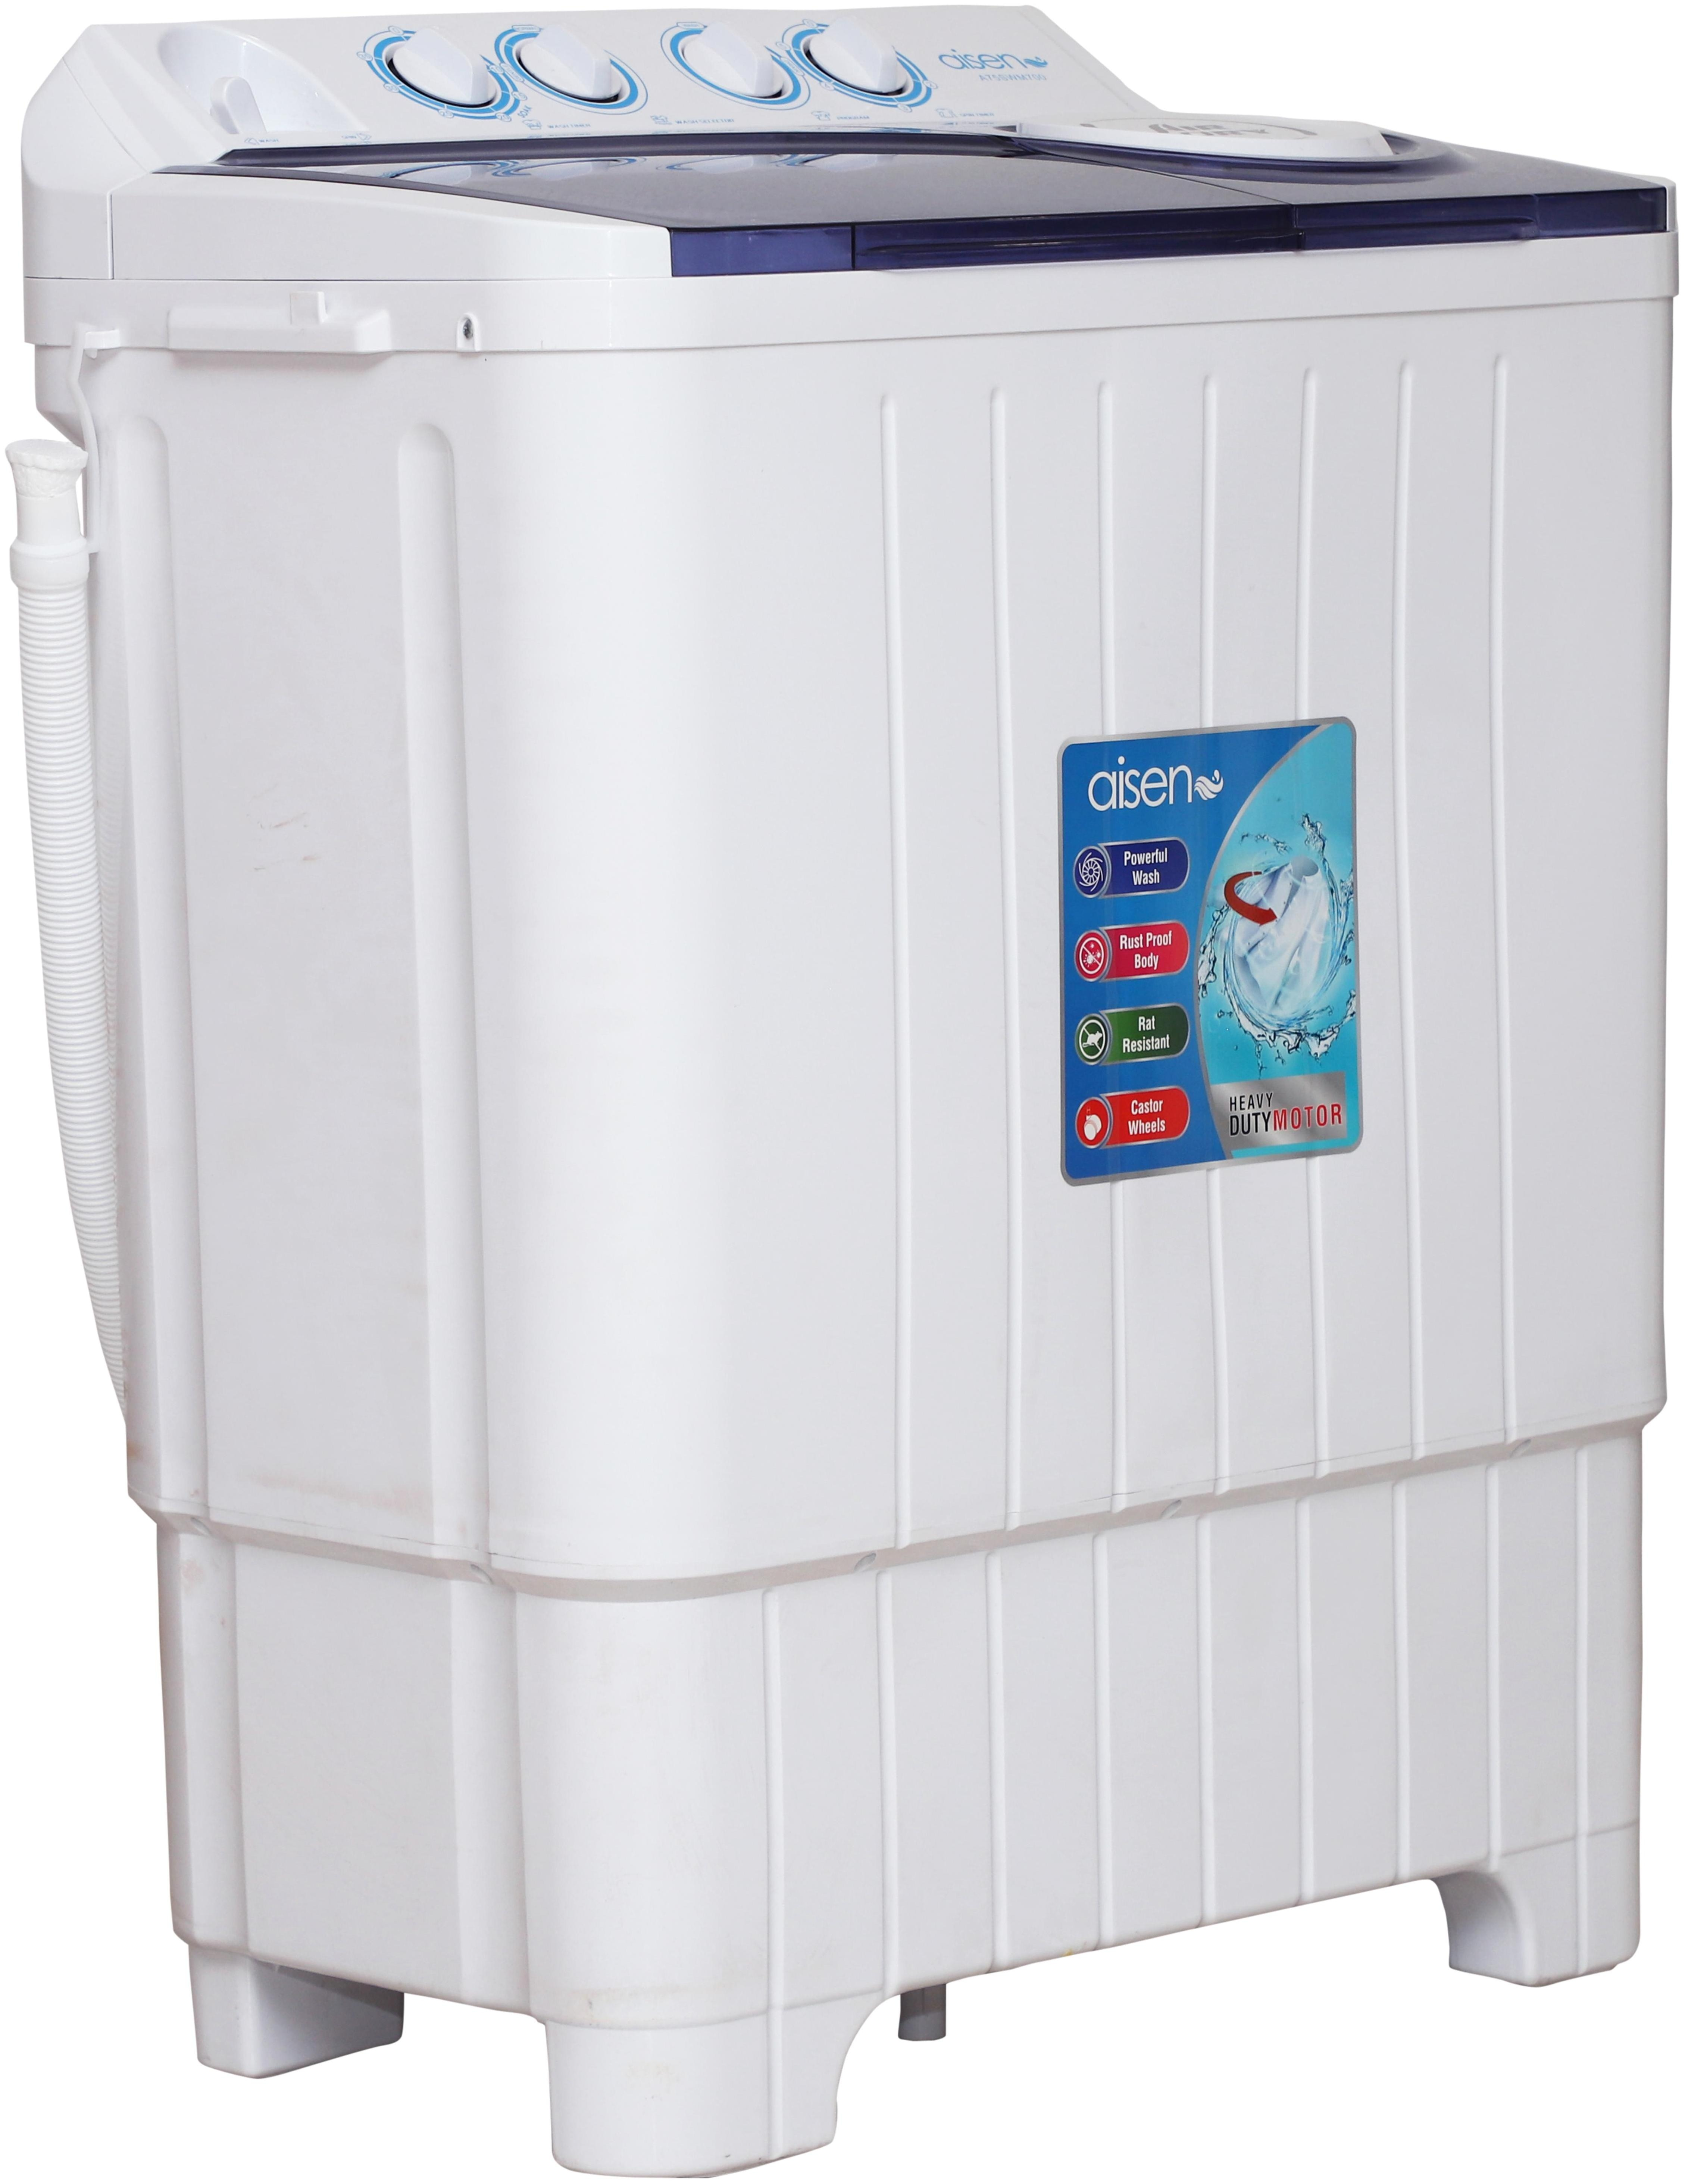 Aisen 7.5 kg Semi Automatic Top Load Washing Machine (A75SWM700-B, White)